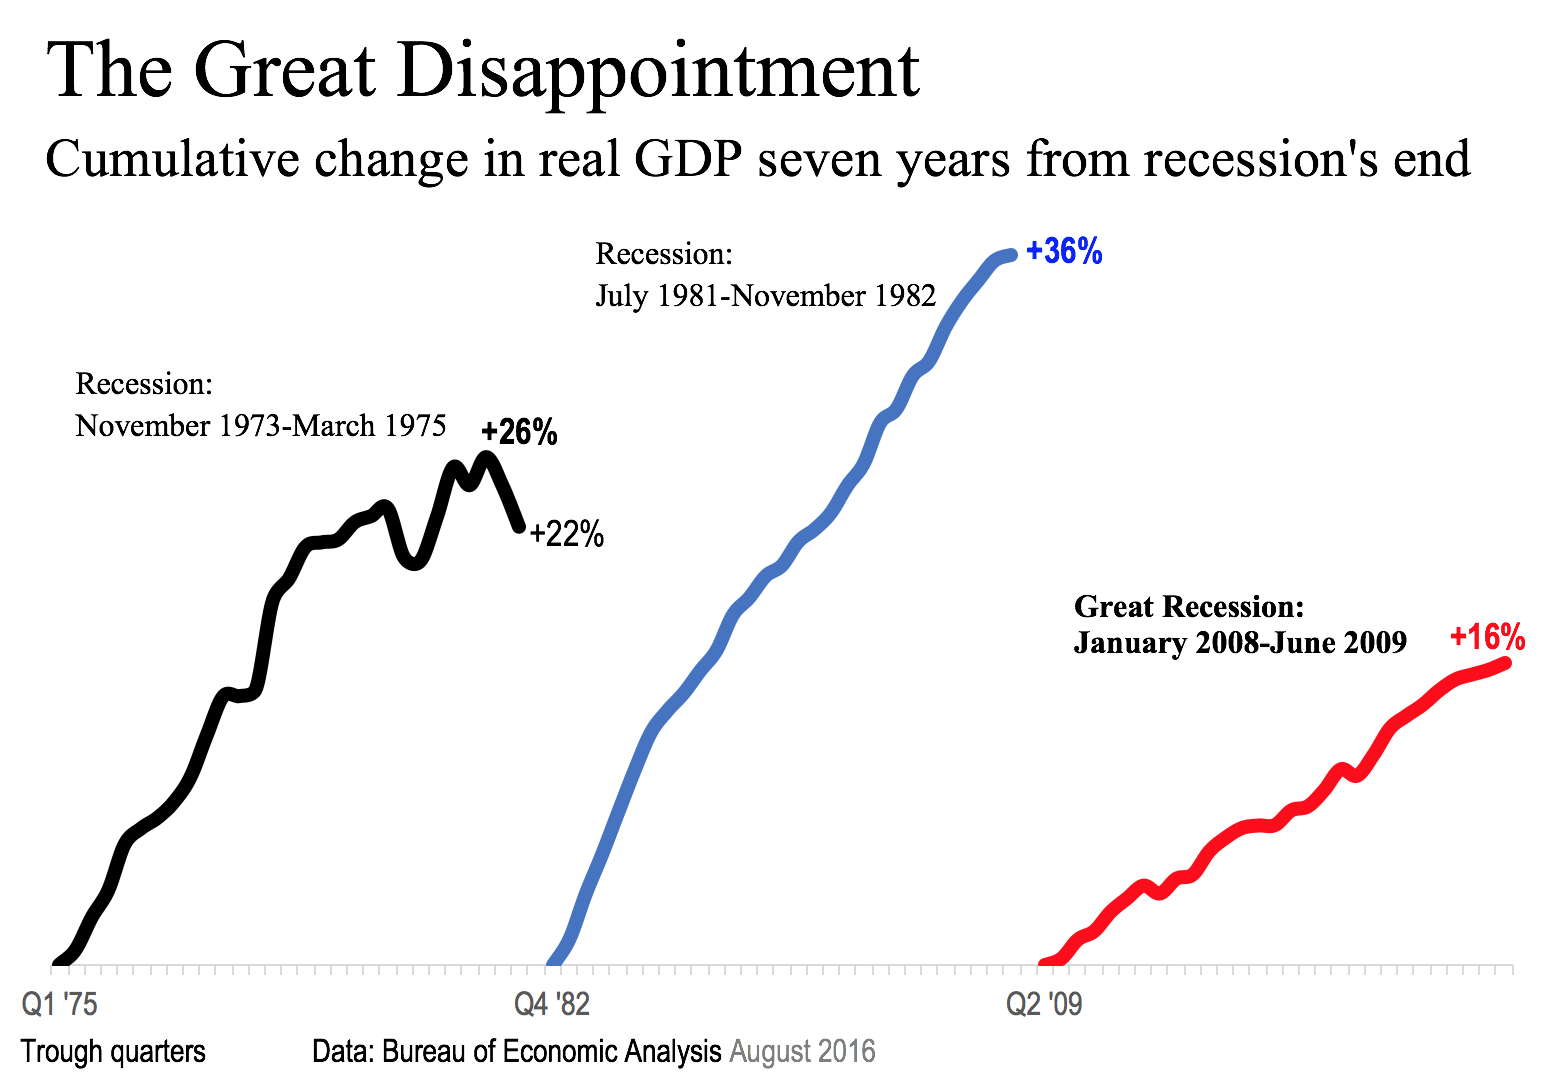 Great Disappointment Aug 2016